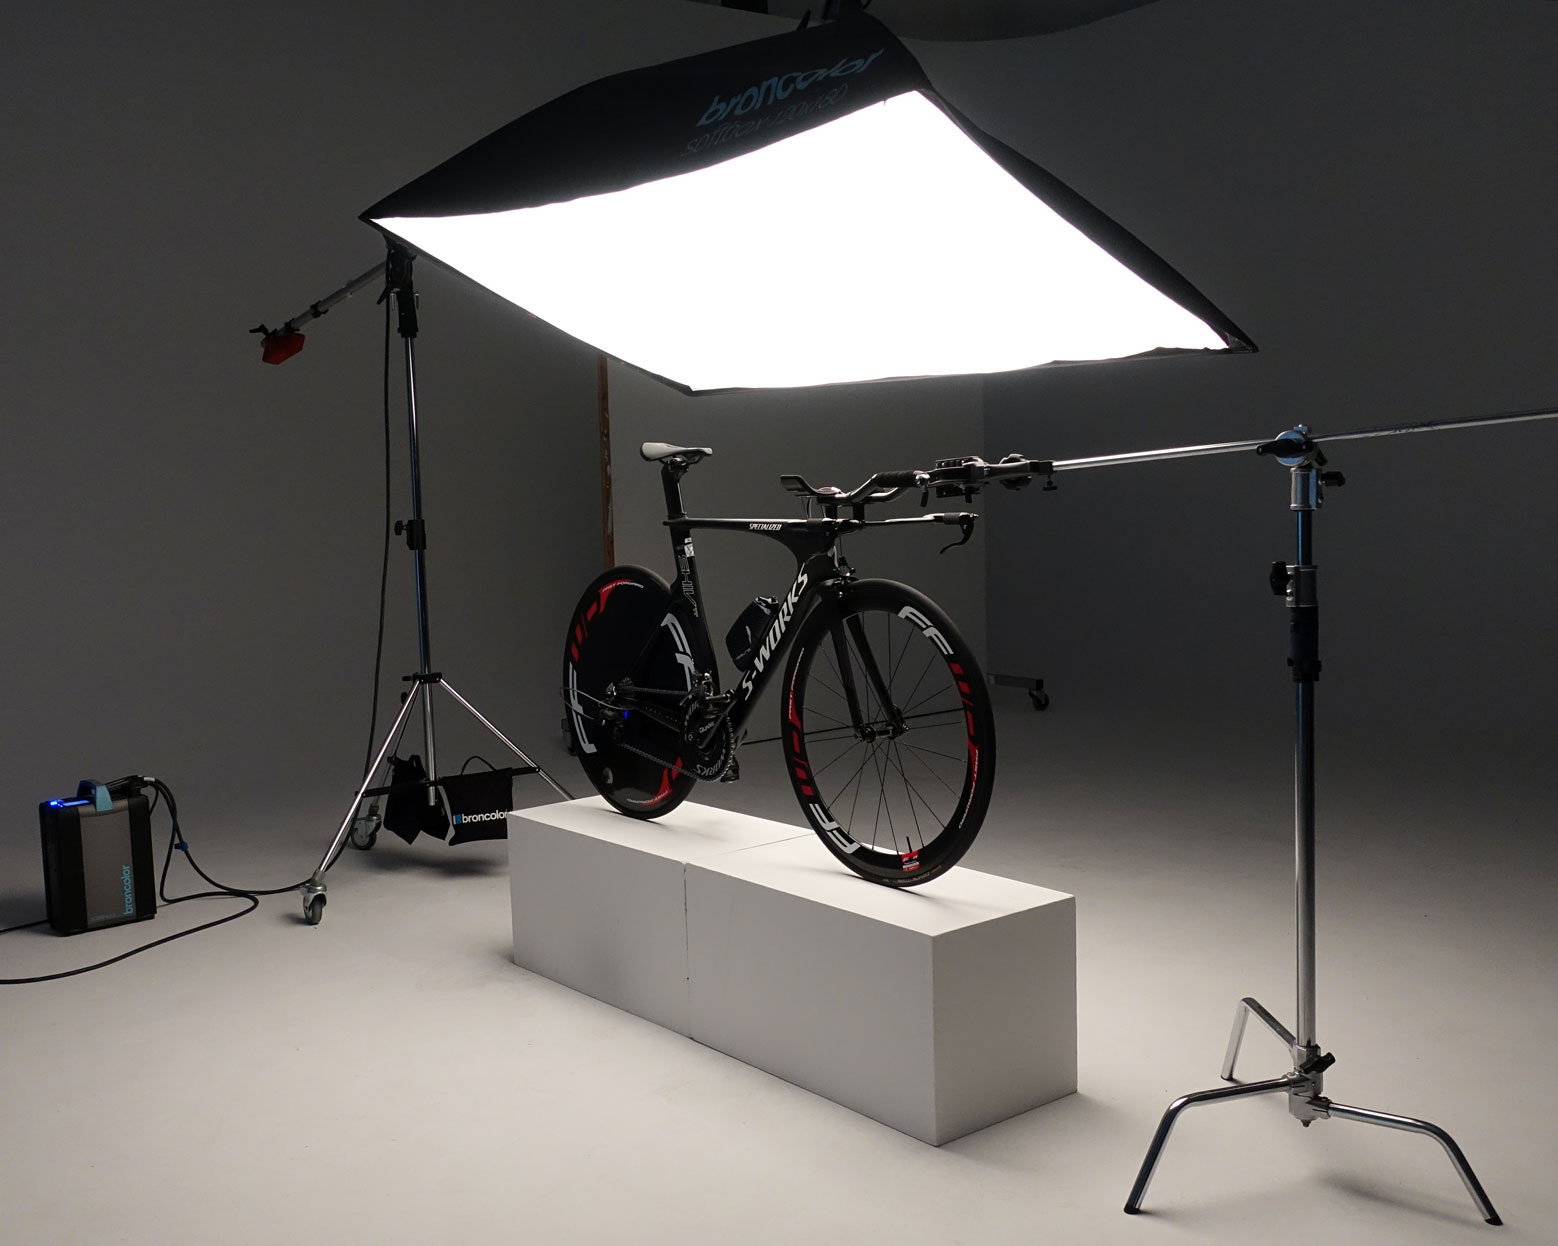 Bicycle fixed in position for product shoot